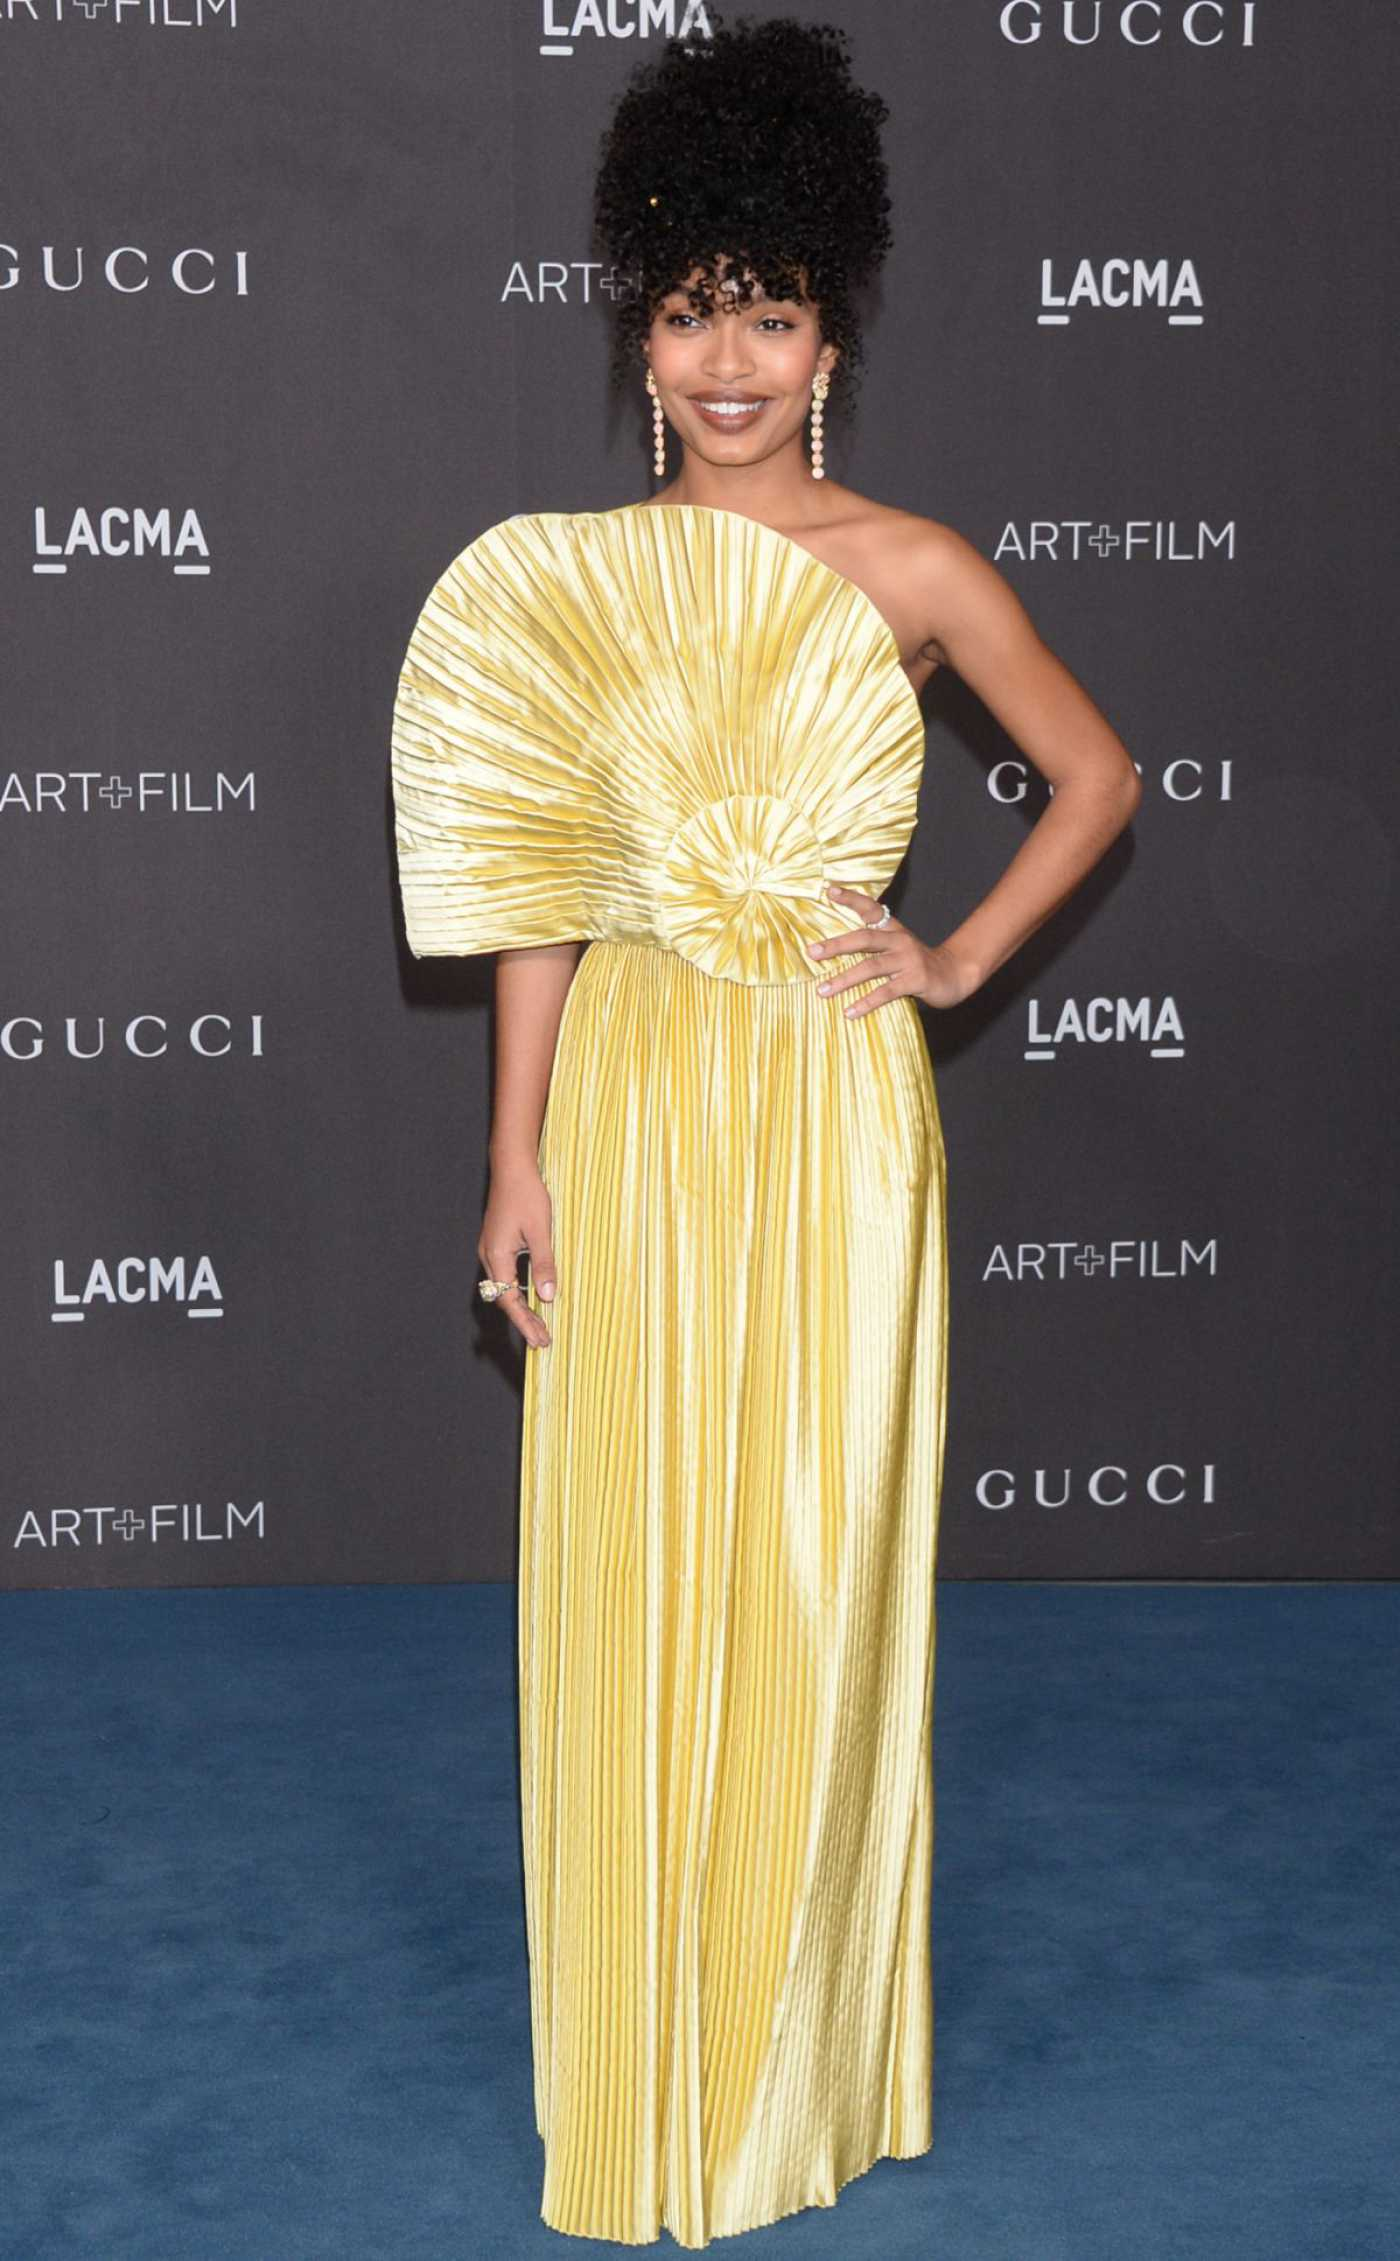 Yara Shahidi Attends 2019 LACMA Art and Film Gala Honoring Betye Saar And Alfonso Cuaron Presented By Gucci in Los Angeles 11/02/2019